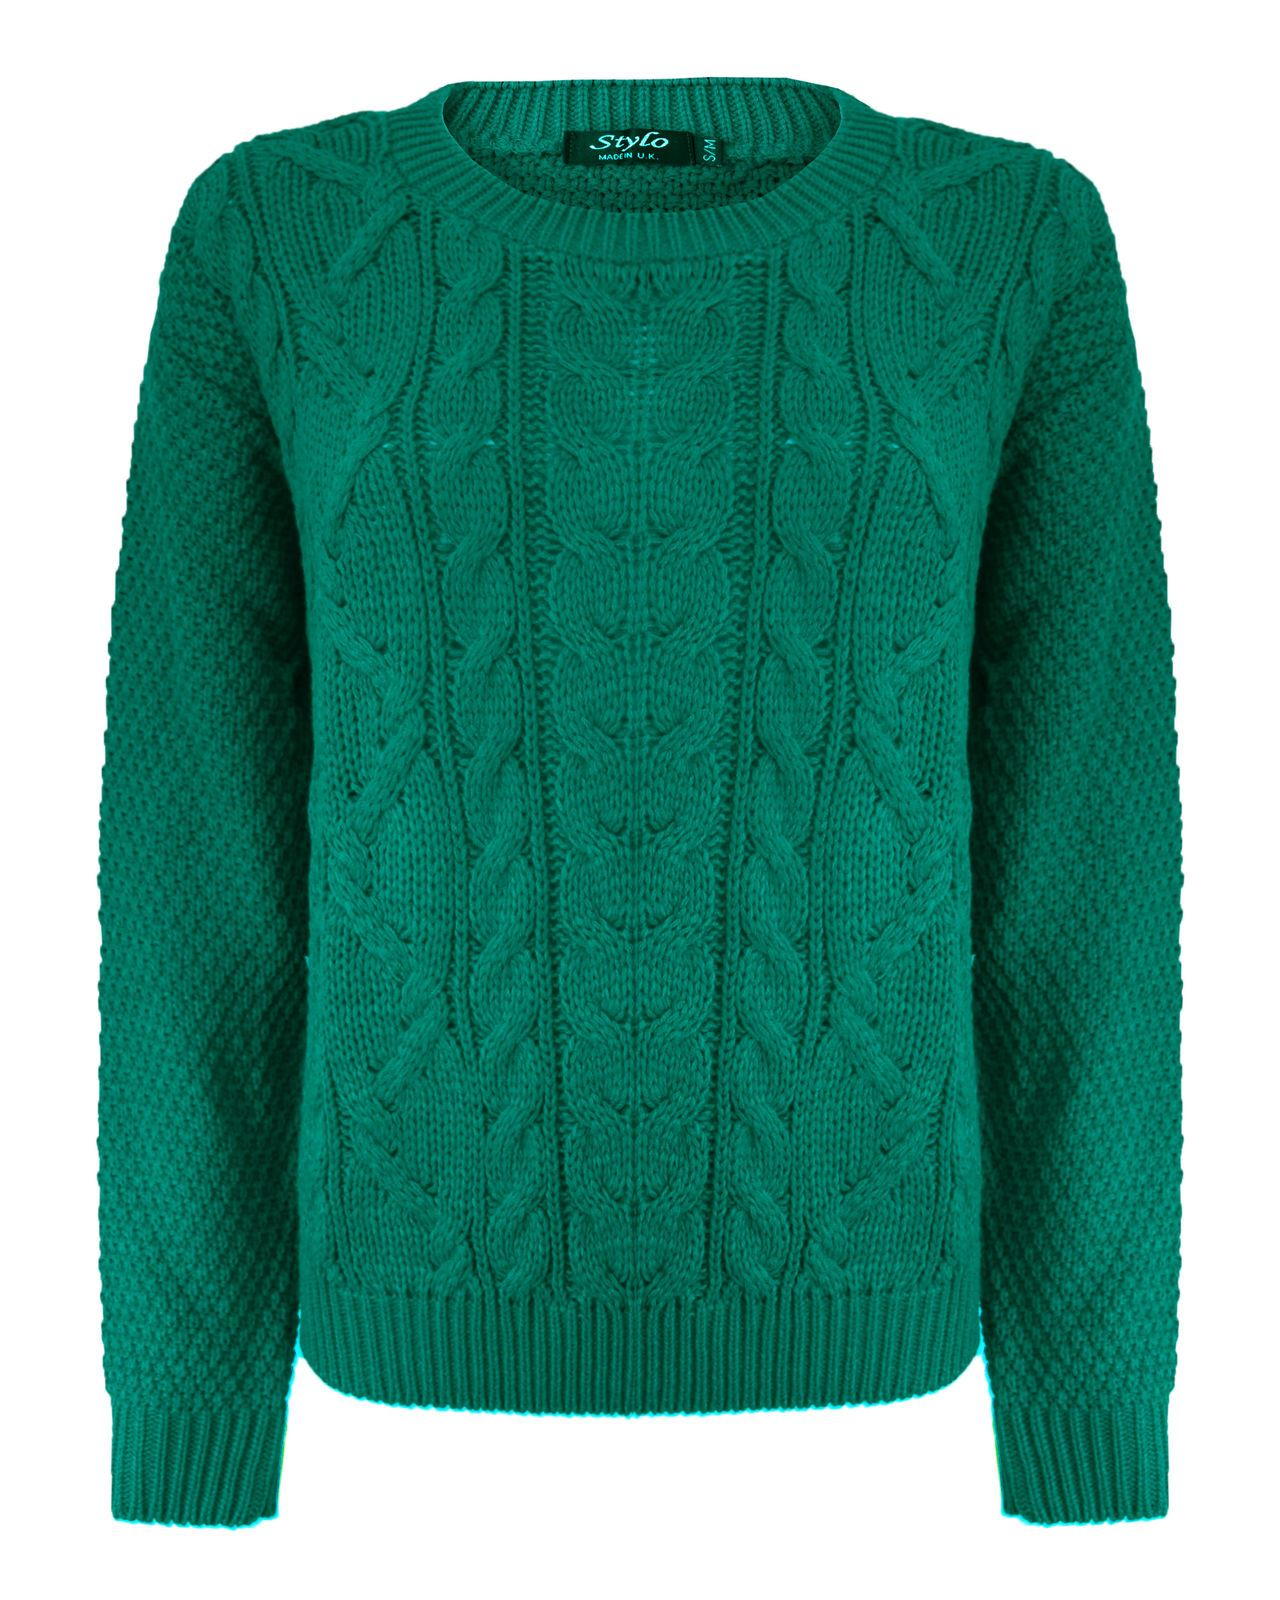 LADIES WOMENS CABLE KNIT LONG SLEEVE KNITTED JUMPER OVER SIZE SWEATER TOP 8-1...